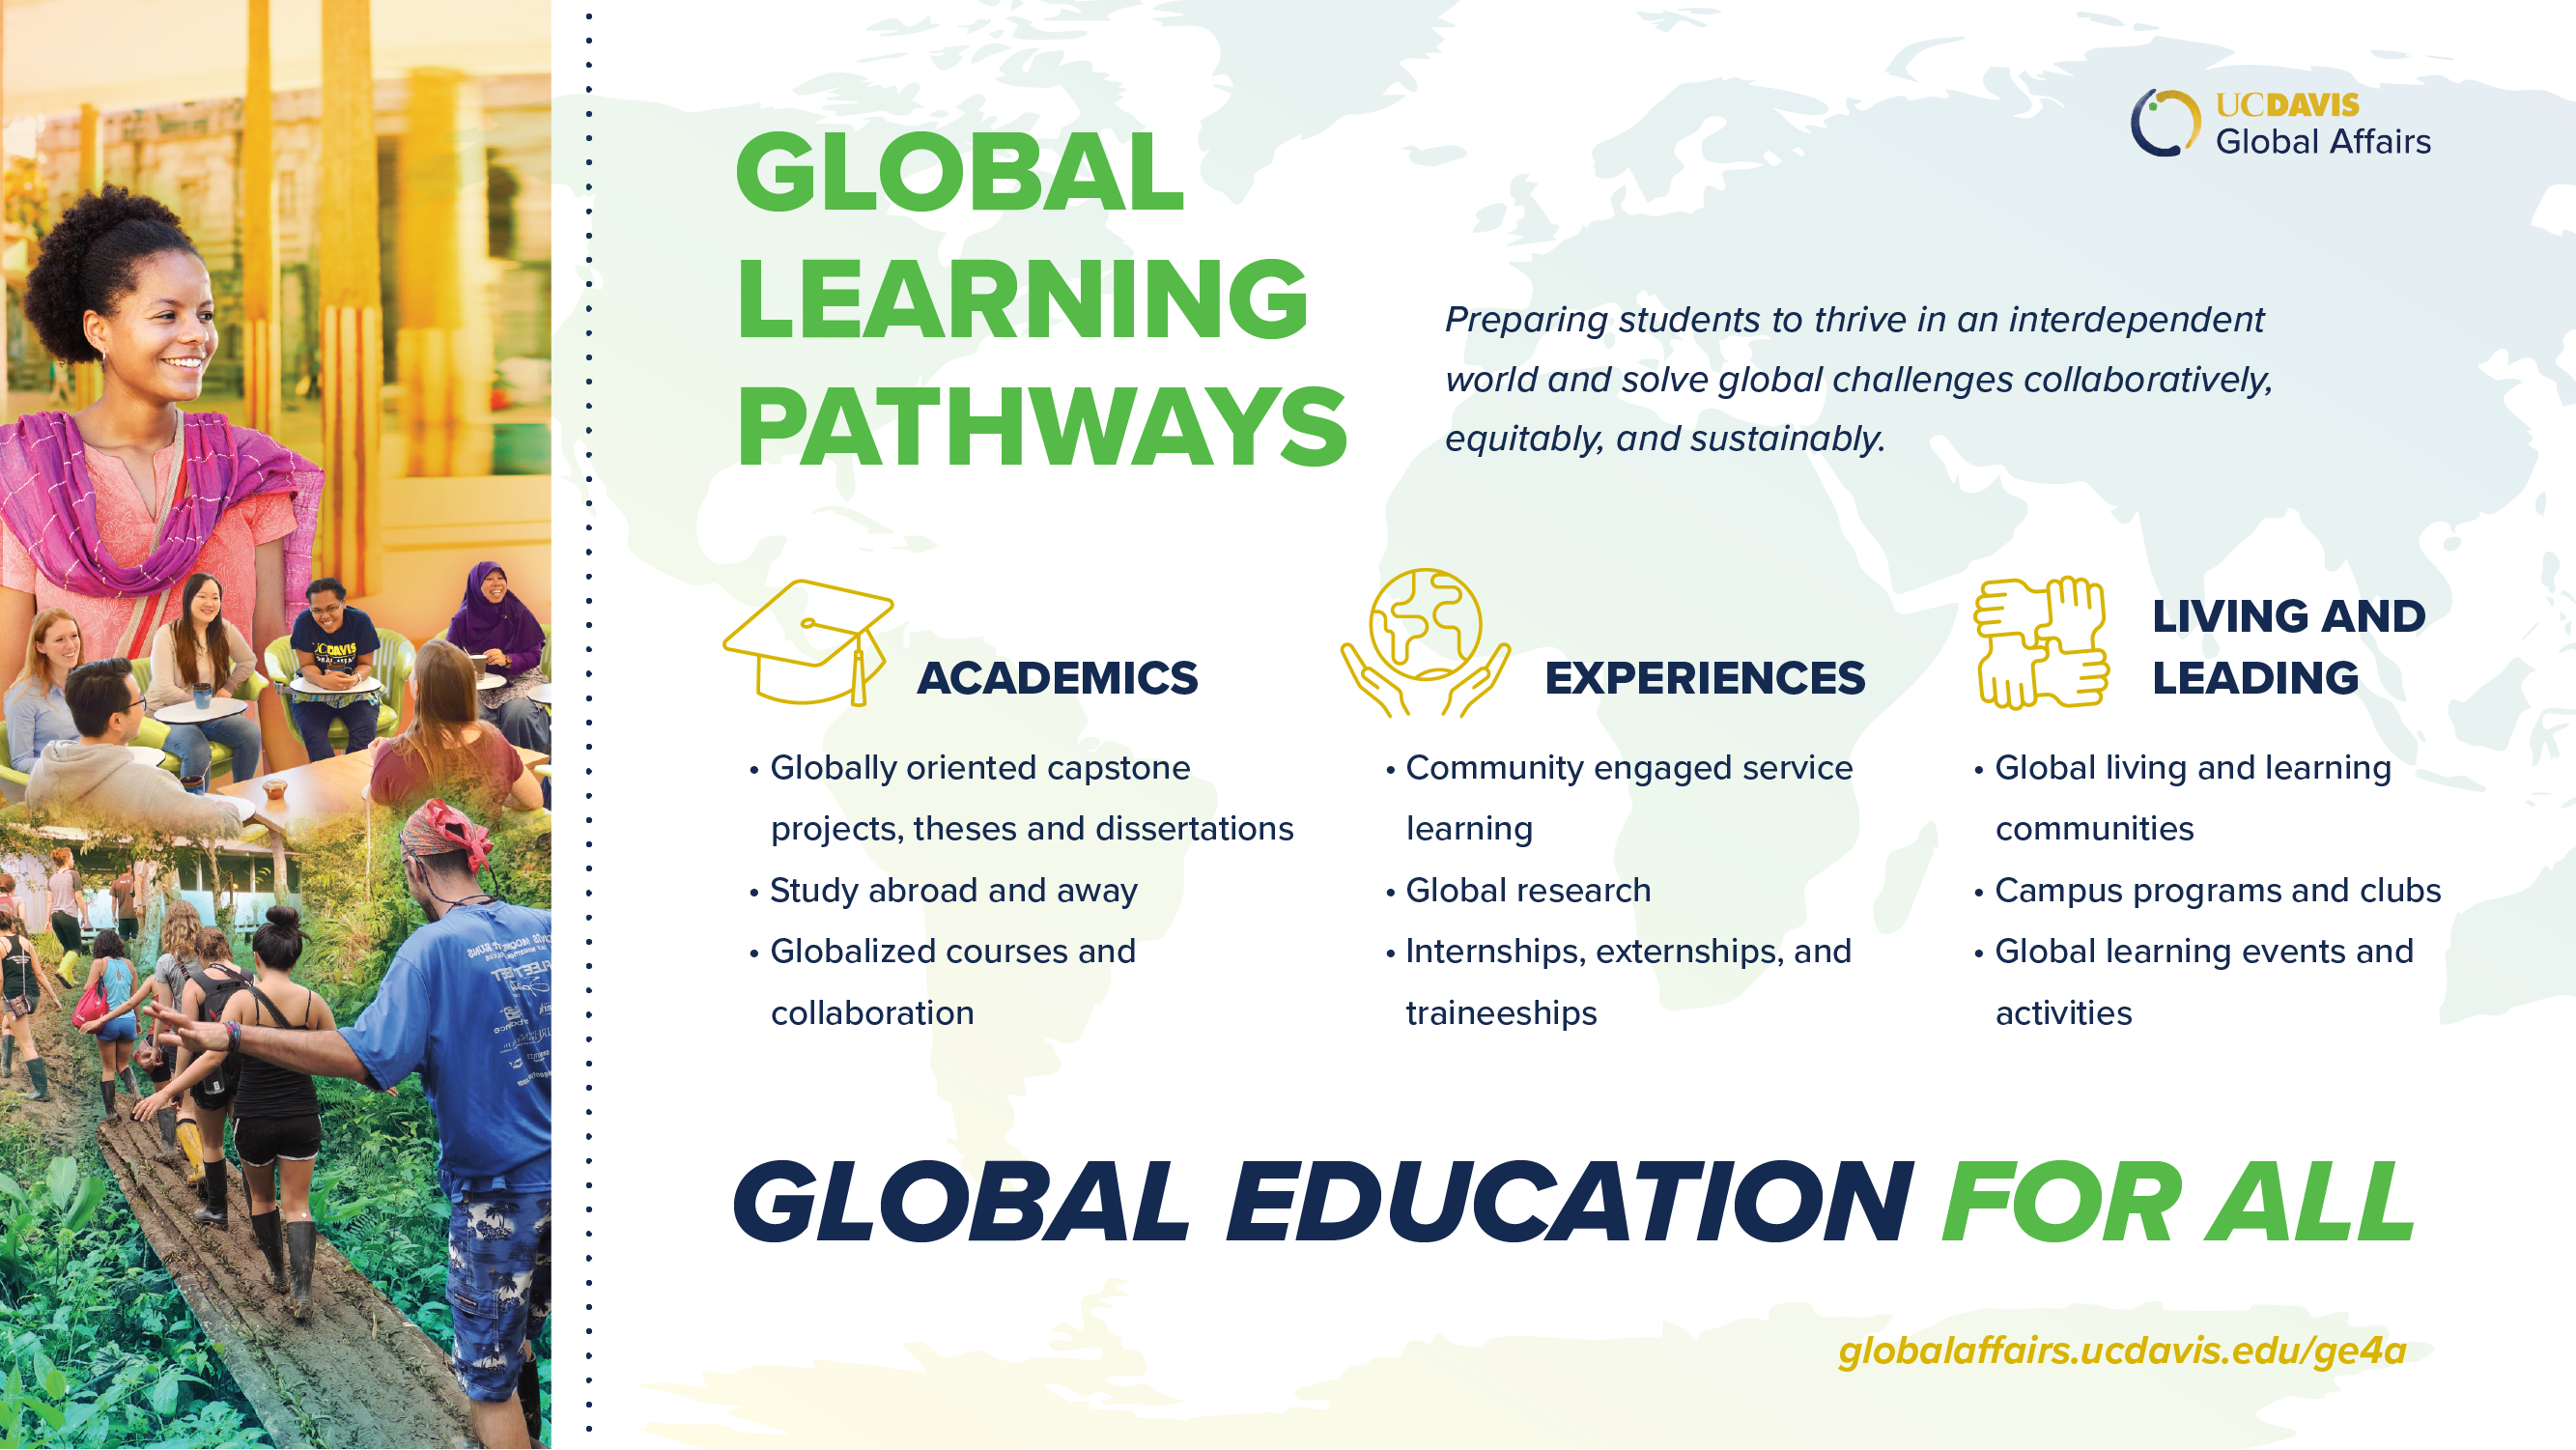 Graphic with: Academics (globally oriented capstone projects, theses and dissertations; study abroad and away; globalized courses and collaboration. Experiences (community engaged service learning; global research; internships, externships and traineeships). Living and Leading (global living and learning communities; campus programs and clubs; global learning events and activities). Global Learning Pathways are preparing students to thrive in an interdependent world and solve global challenges collaboratively, equitably, and sustainably.